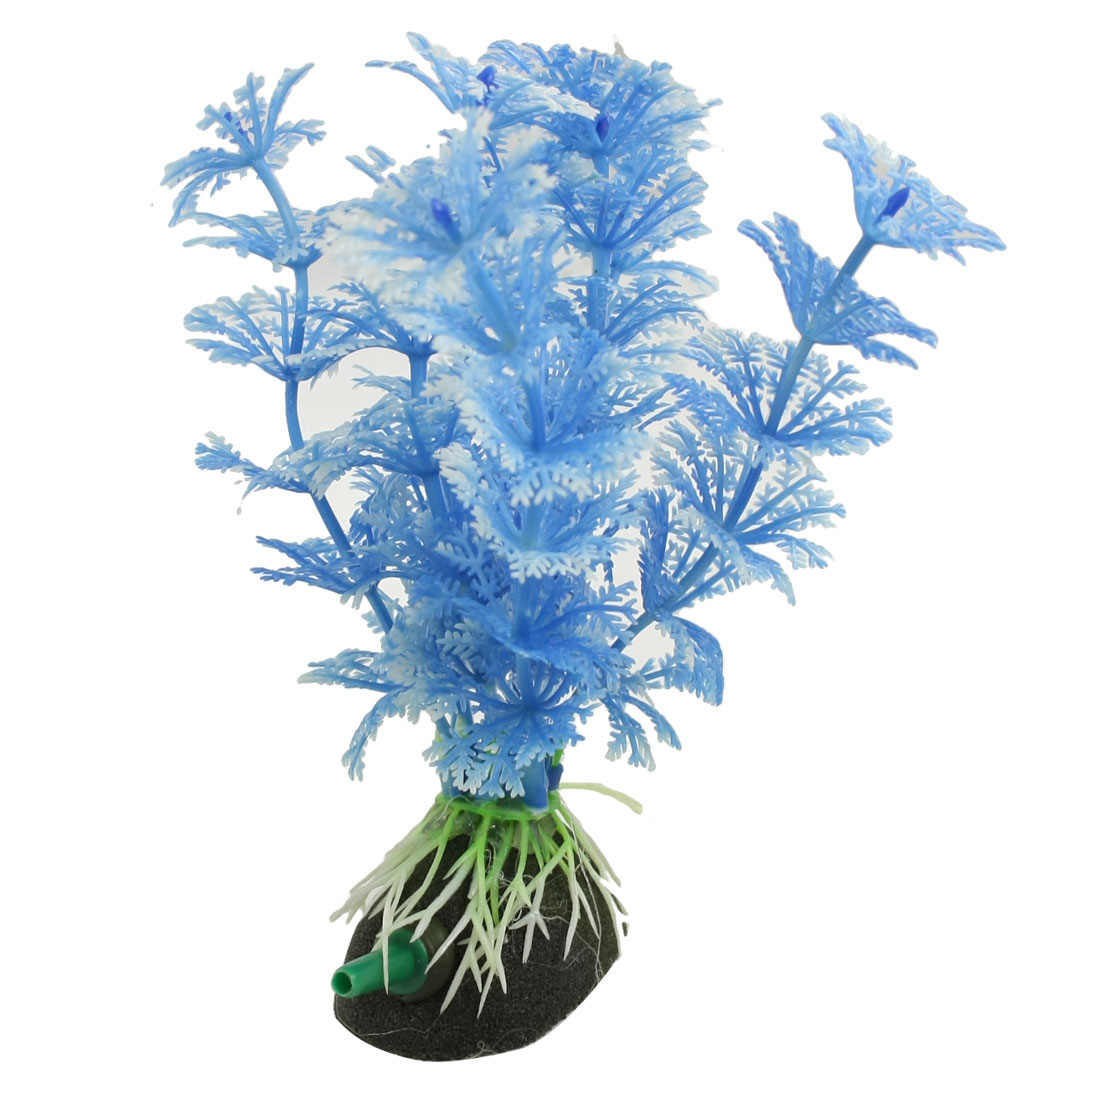 Underwater Blue Plastic Plants Ornament for Aquarium Fish Tank